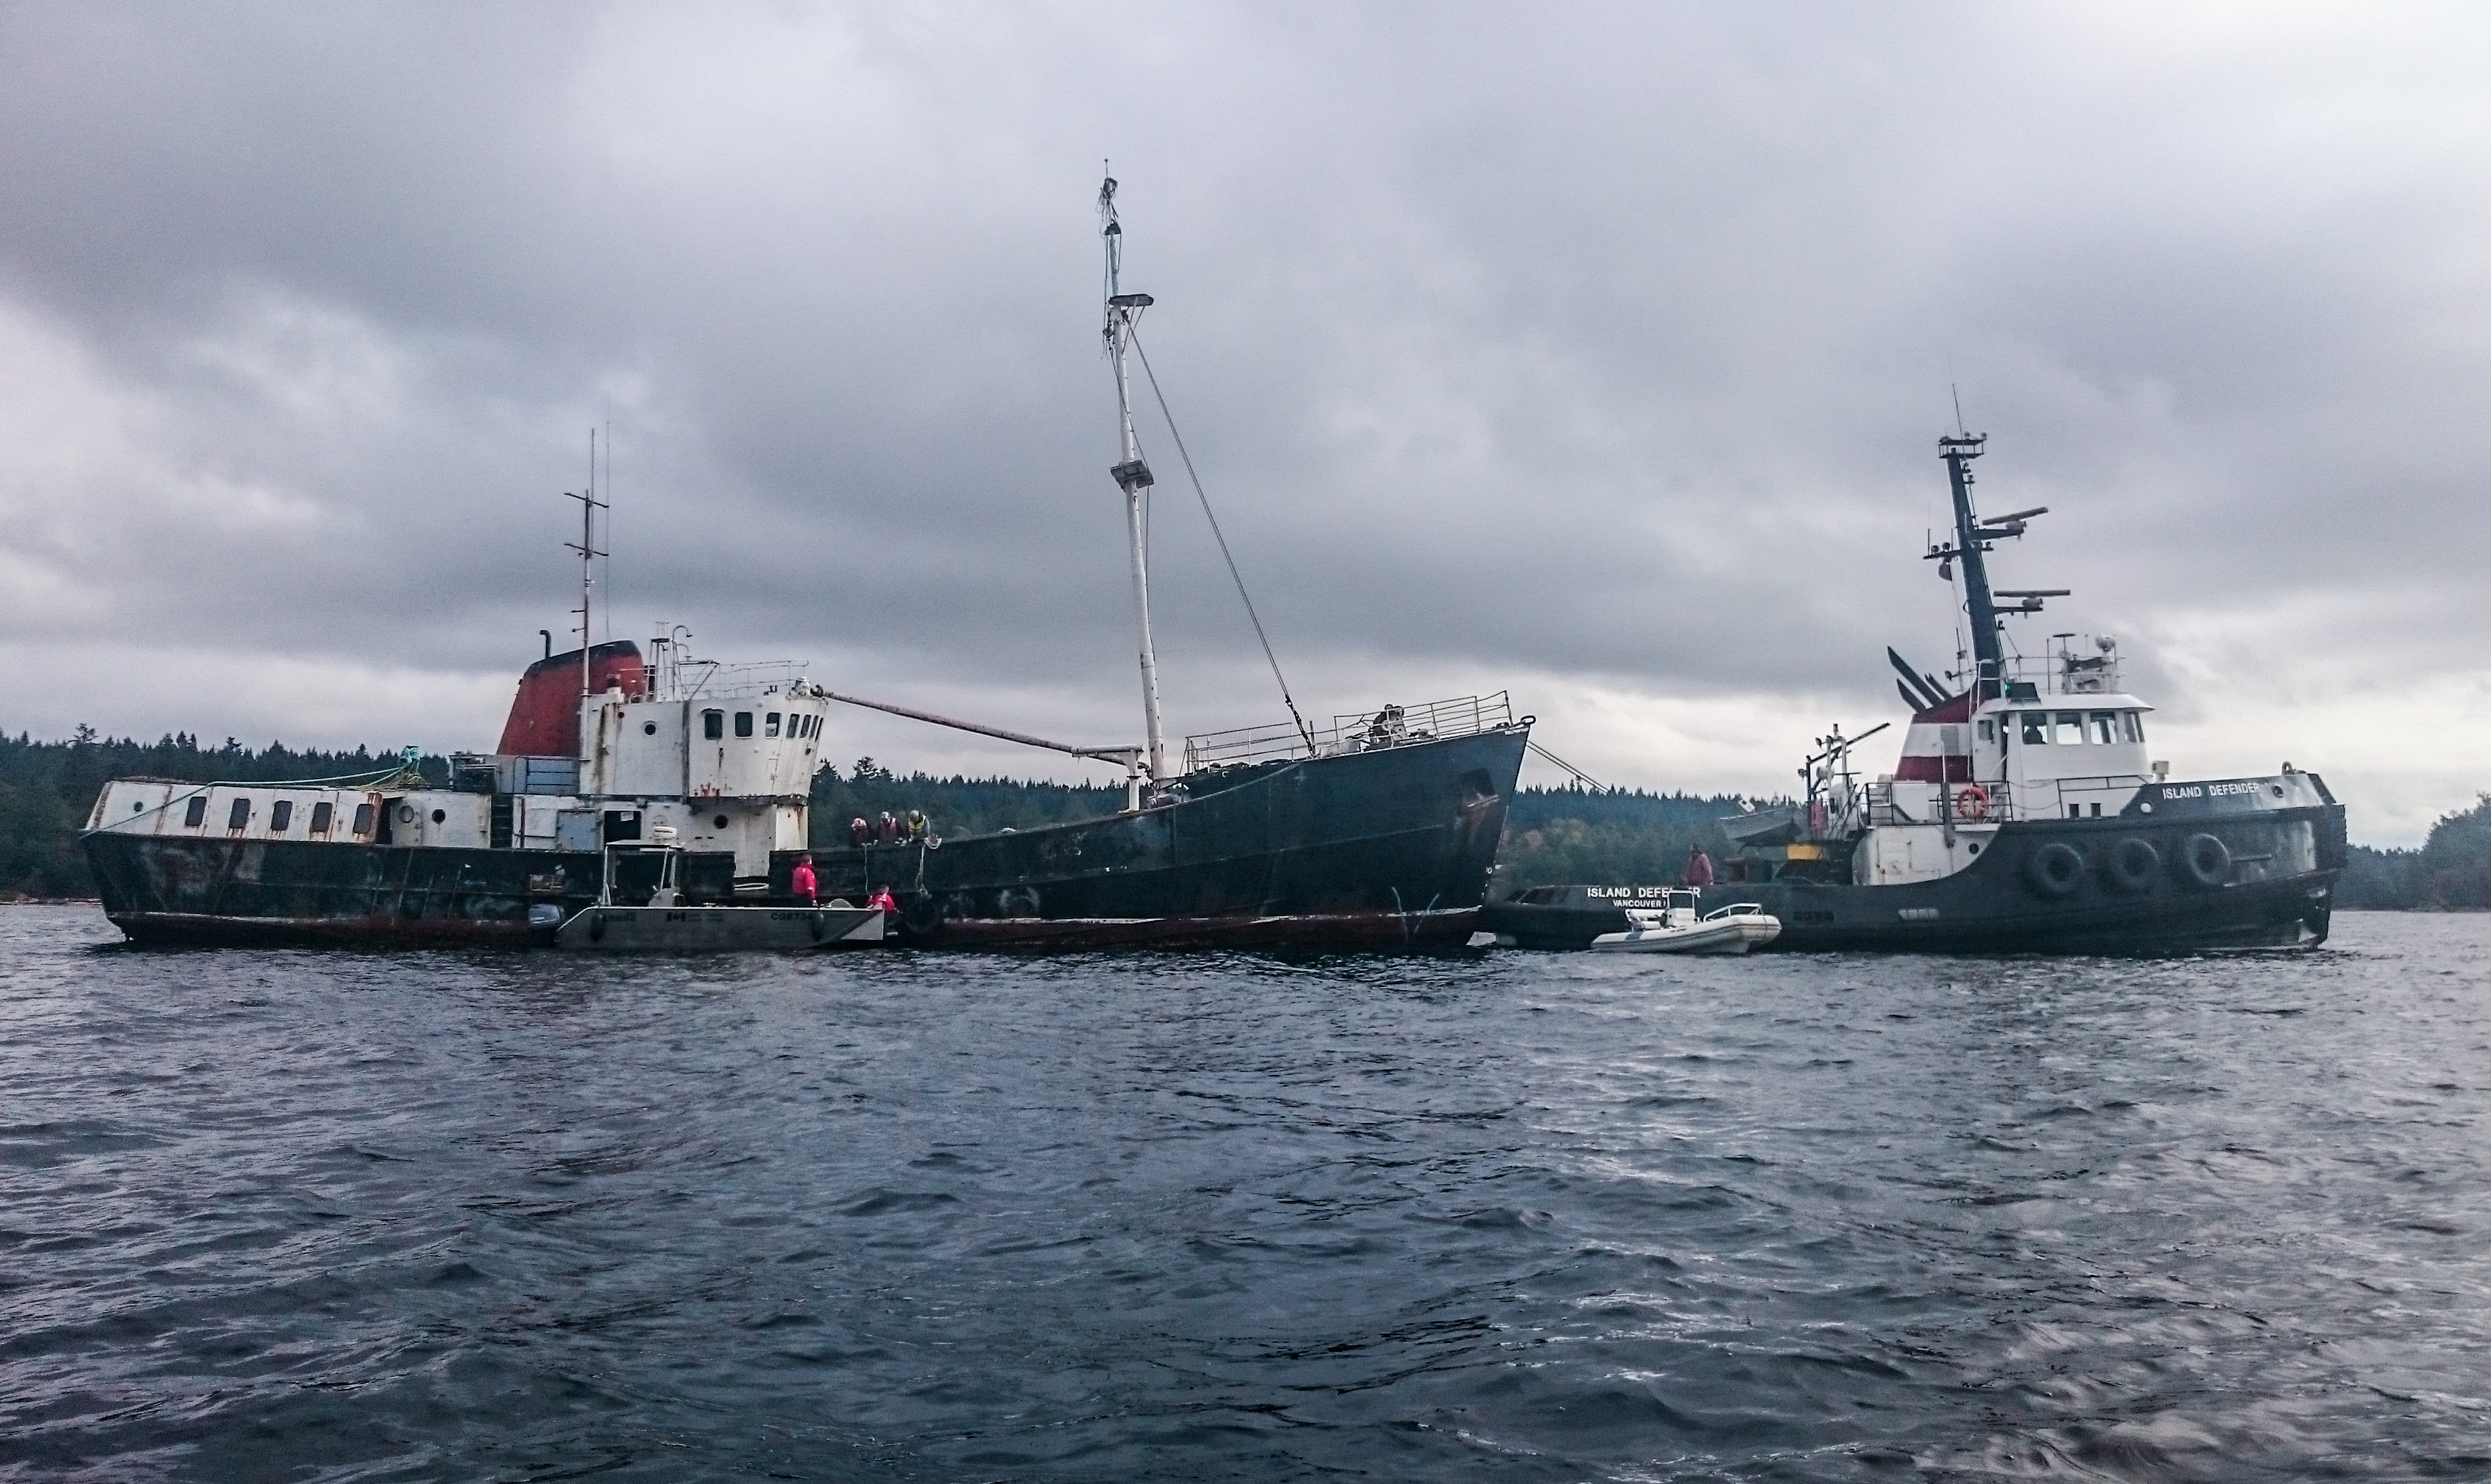 The abandoned and decaying Viki Lyne II is finally being towed away for safe dismantling after sitting in Ladysmith Harbour since 2012.